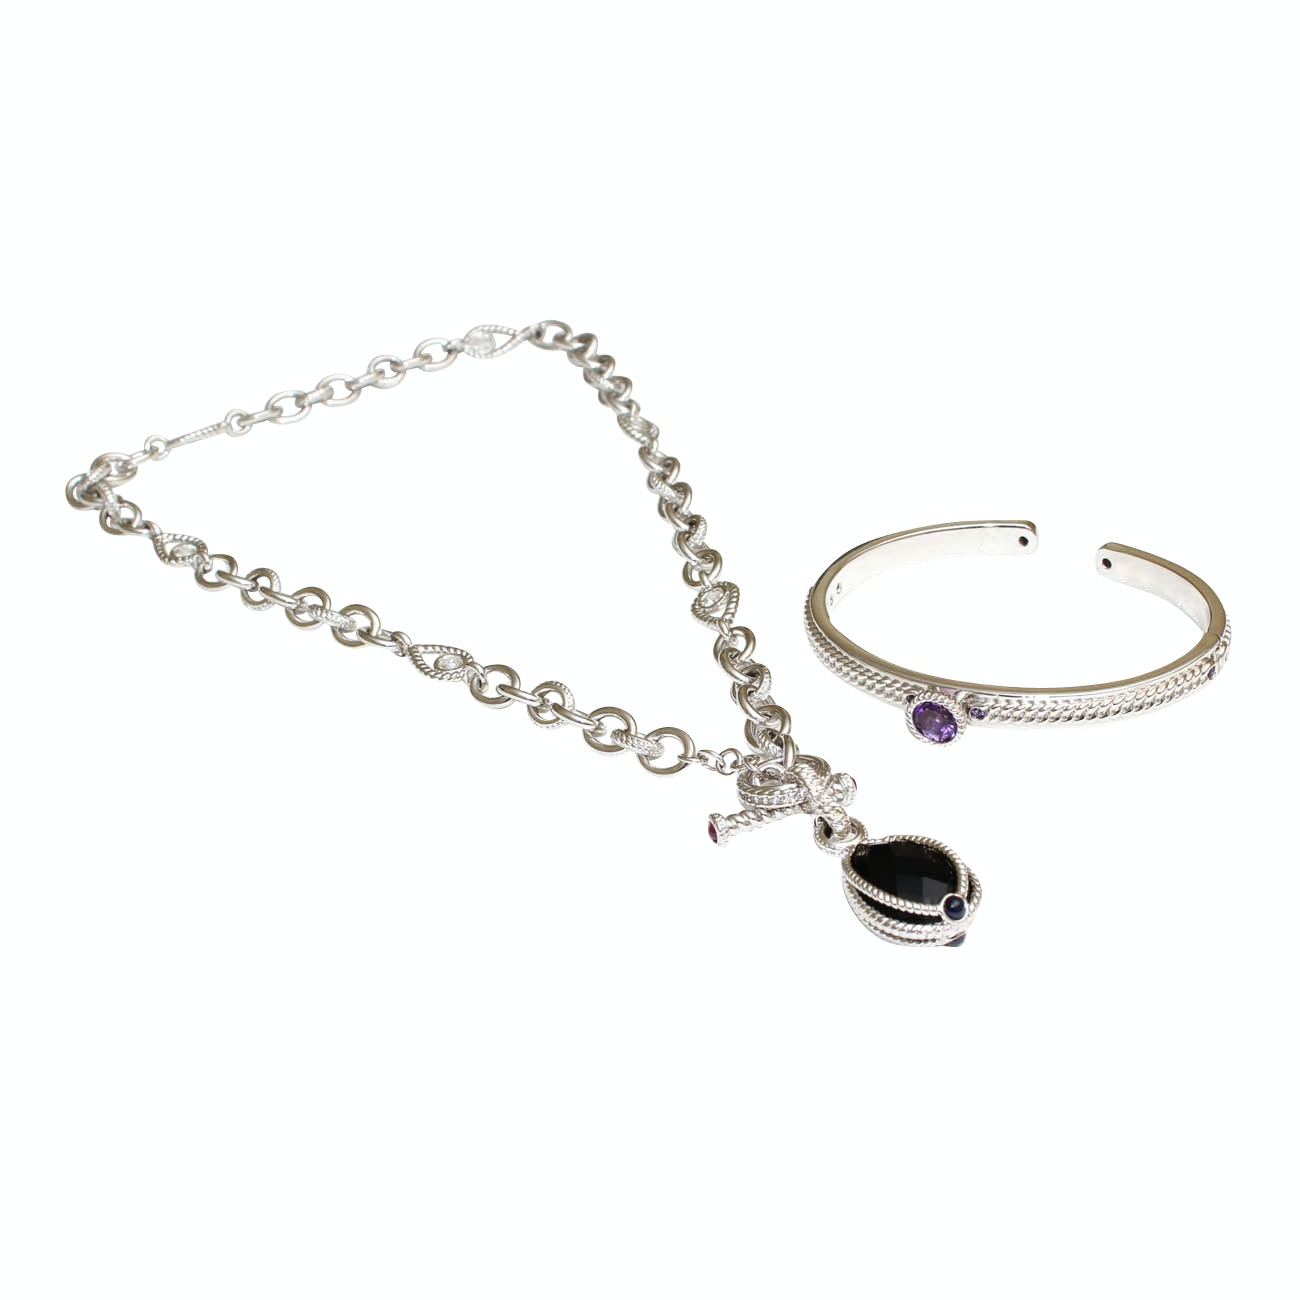 Atelier Sterling Silver Jewelry with Gemstones